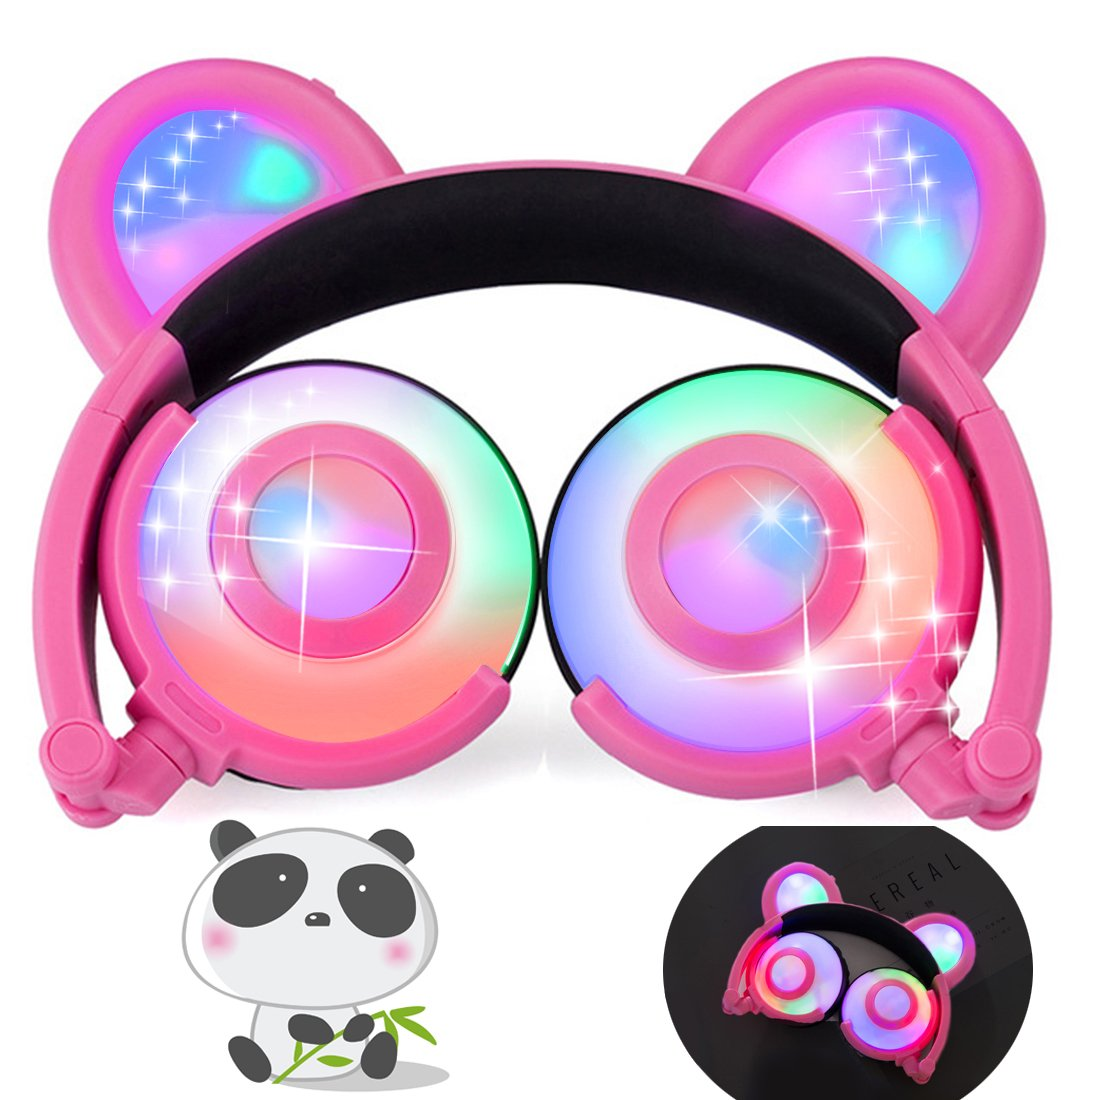 iGeeKid Kids Headphones Bear Ear LED Backlight USB Rechargeable Wired On/Over Ear Gaming Headsets 85dB Volume Limited 3.5mm Jack Headset for Girls Boys Kids Tablet Phone Android PC (pink1)